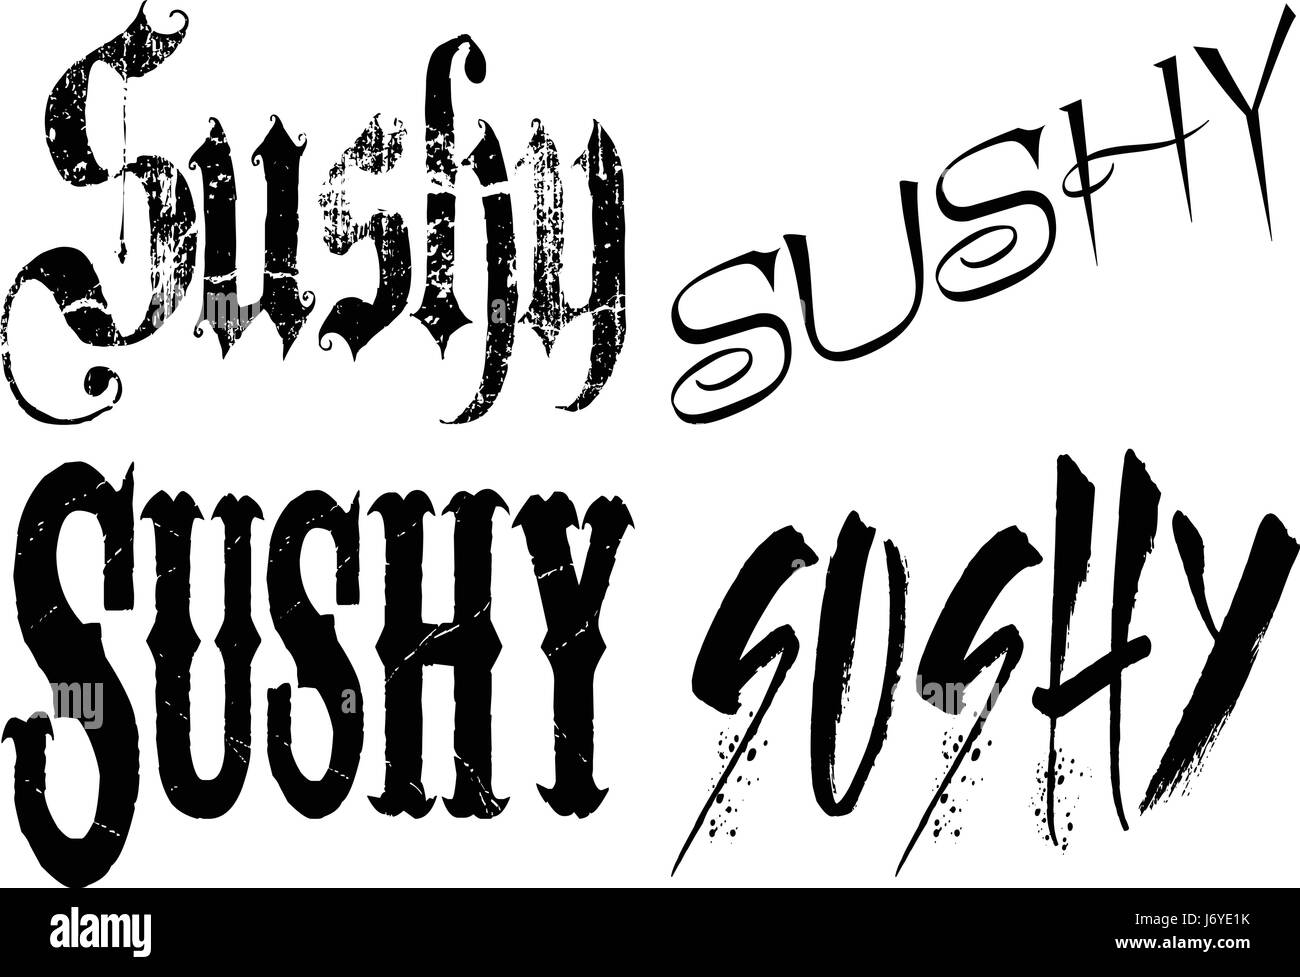 Sushy text banner in black lettesr on white background - Stock Image